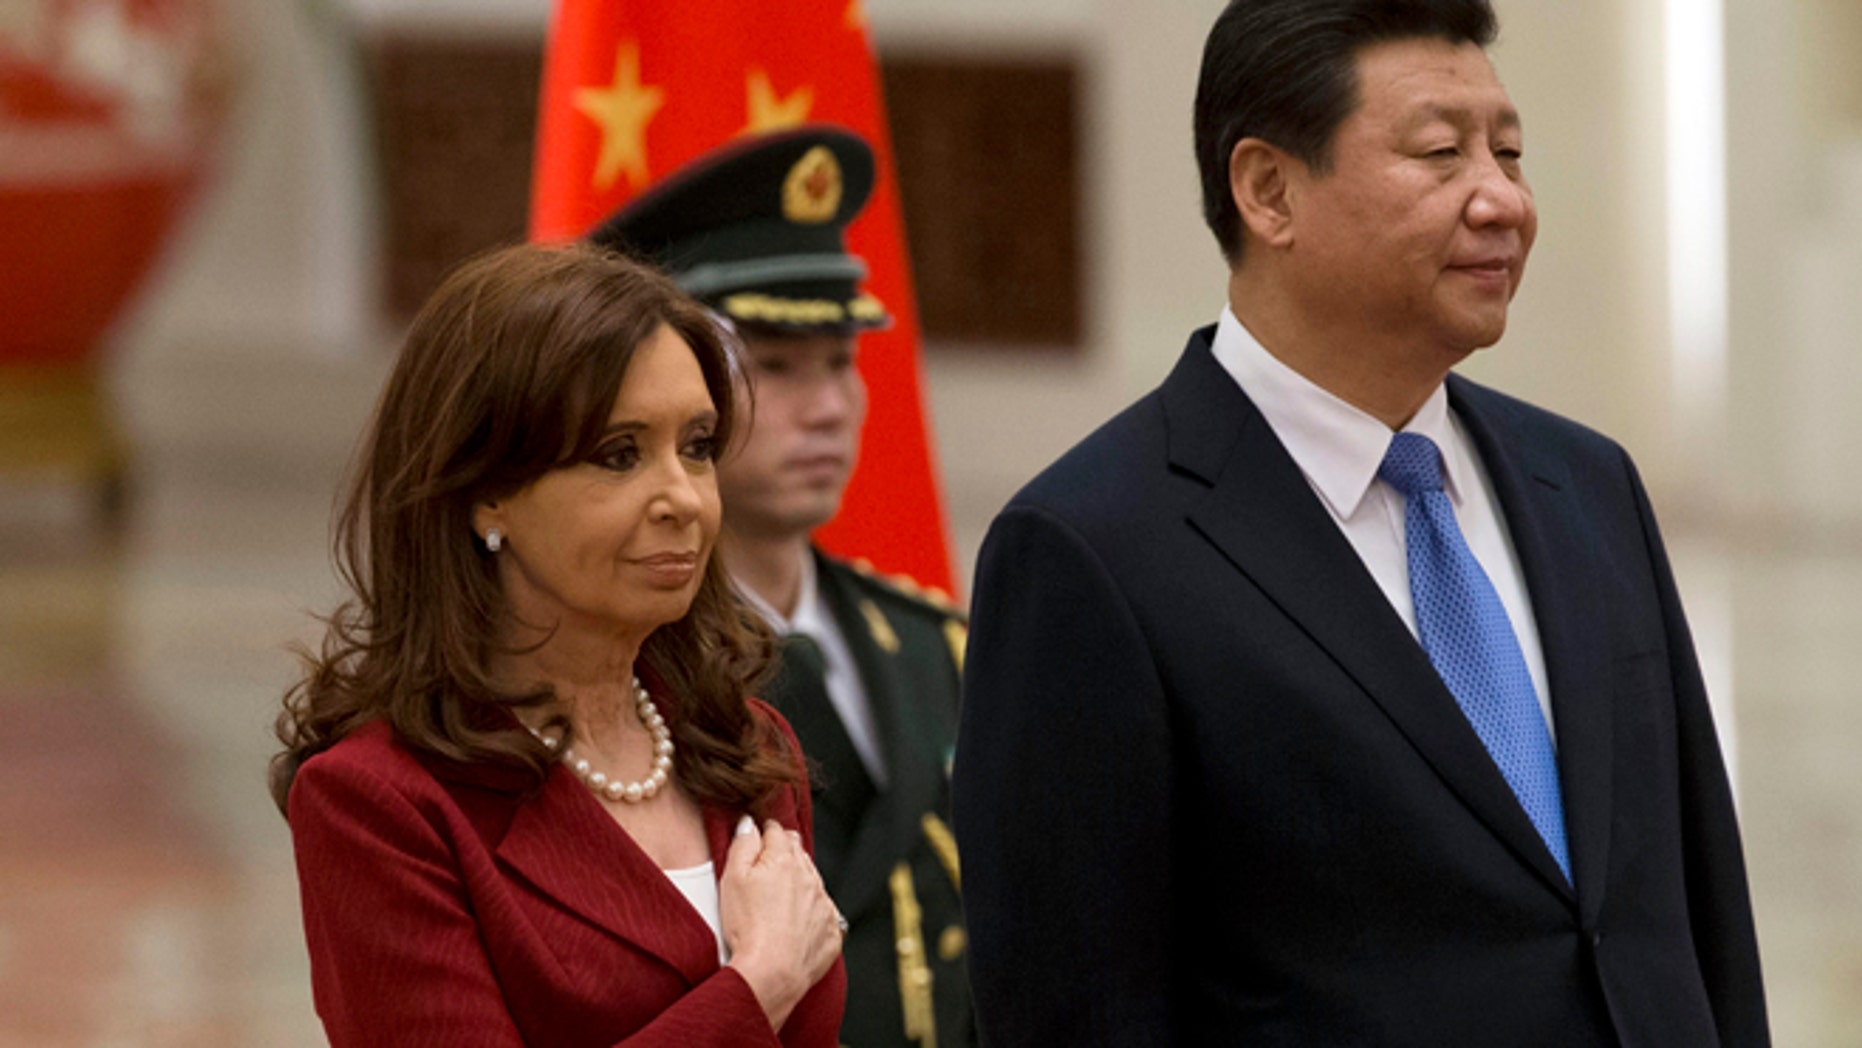 Argentine President Cristina Fernandez places her hand over her chest as she stands next to Chinese President Xi Jinping while the Argentine national anthem is played during a welcome ceremony at the Great Hall of the People in Beijing Wednesday, Feb. 4, 2015. (AP Photo/Ng Han Guan)